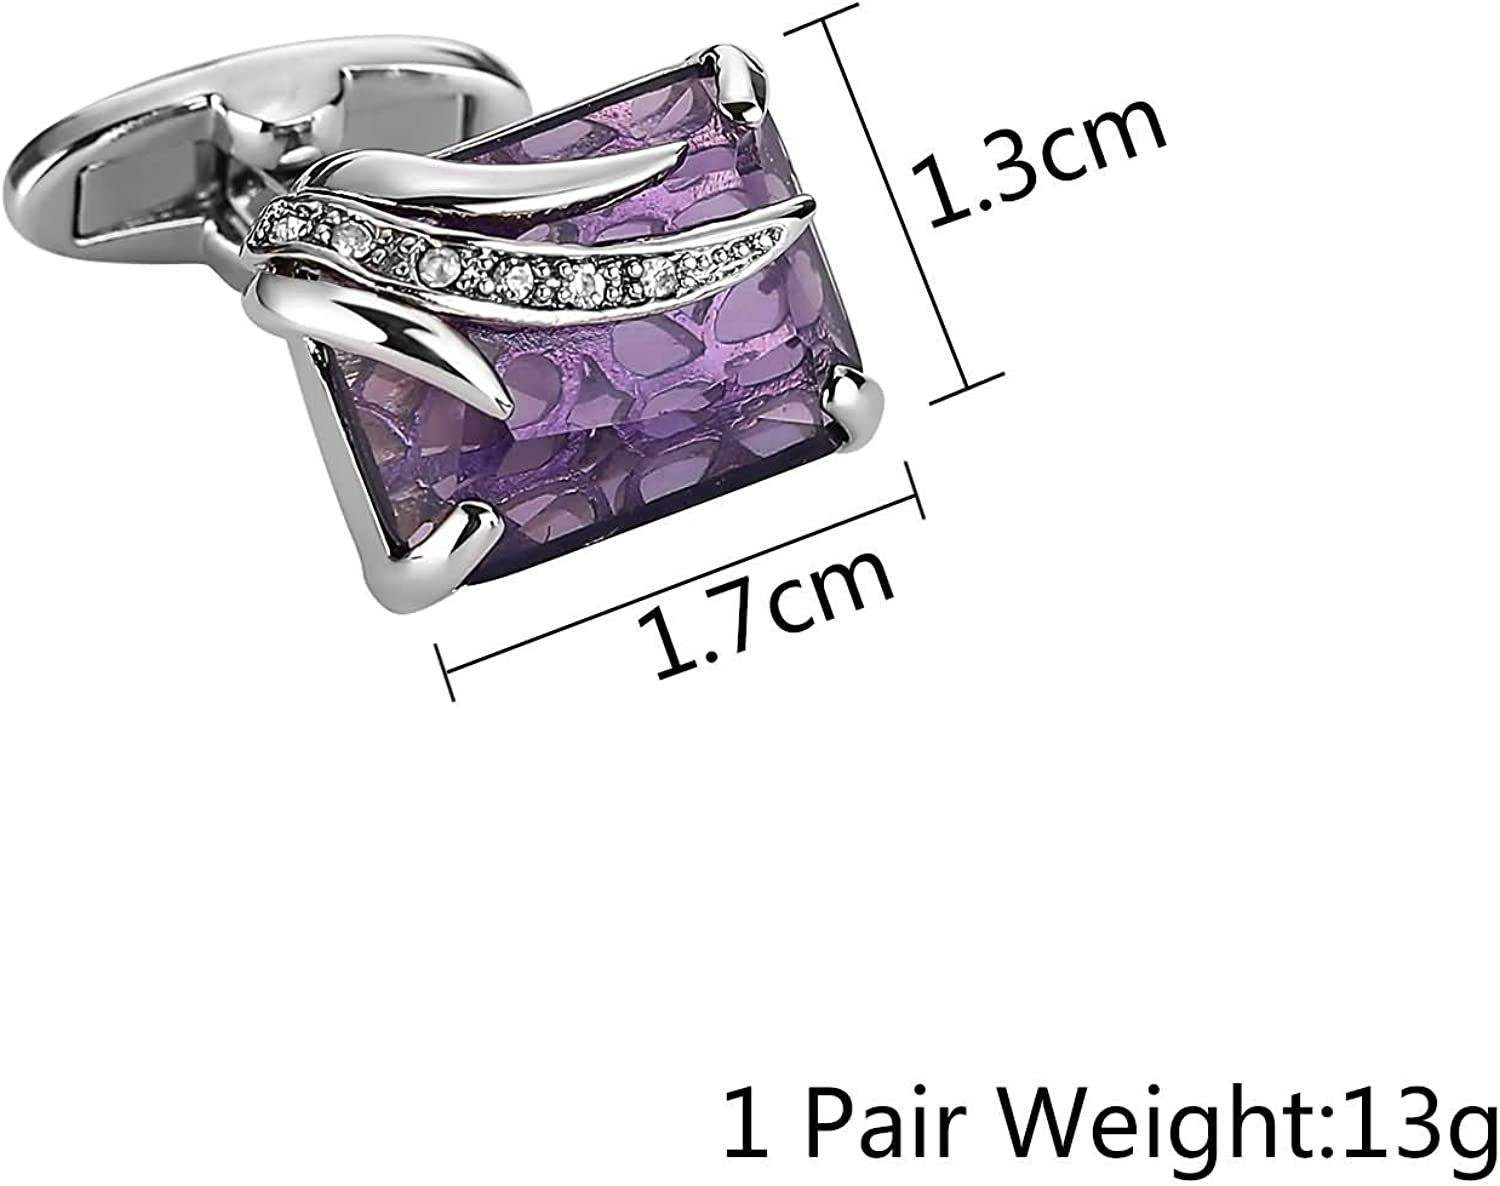 Aooaz Mens Stainless Steel Cufflinks 2Pcs Size X with Xmas Gift Box 4 Styles Novelty Shirt Cufflinks